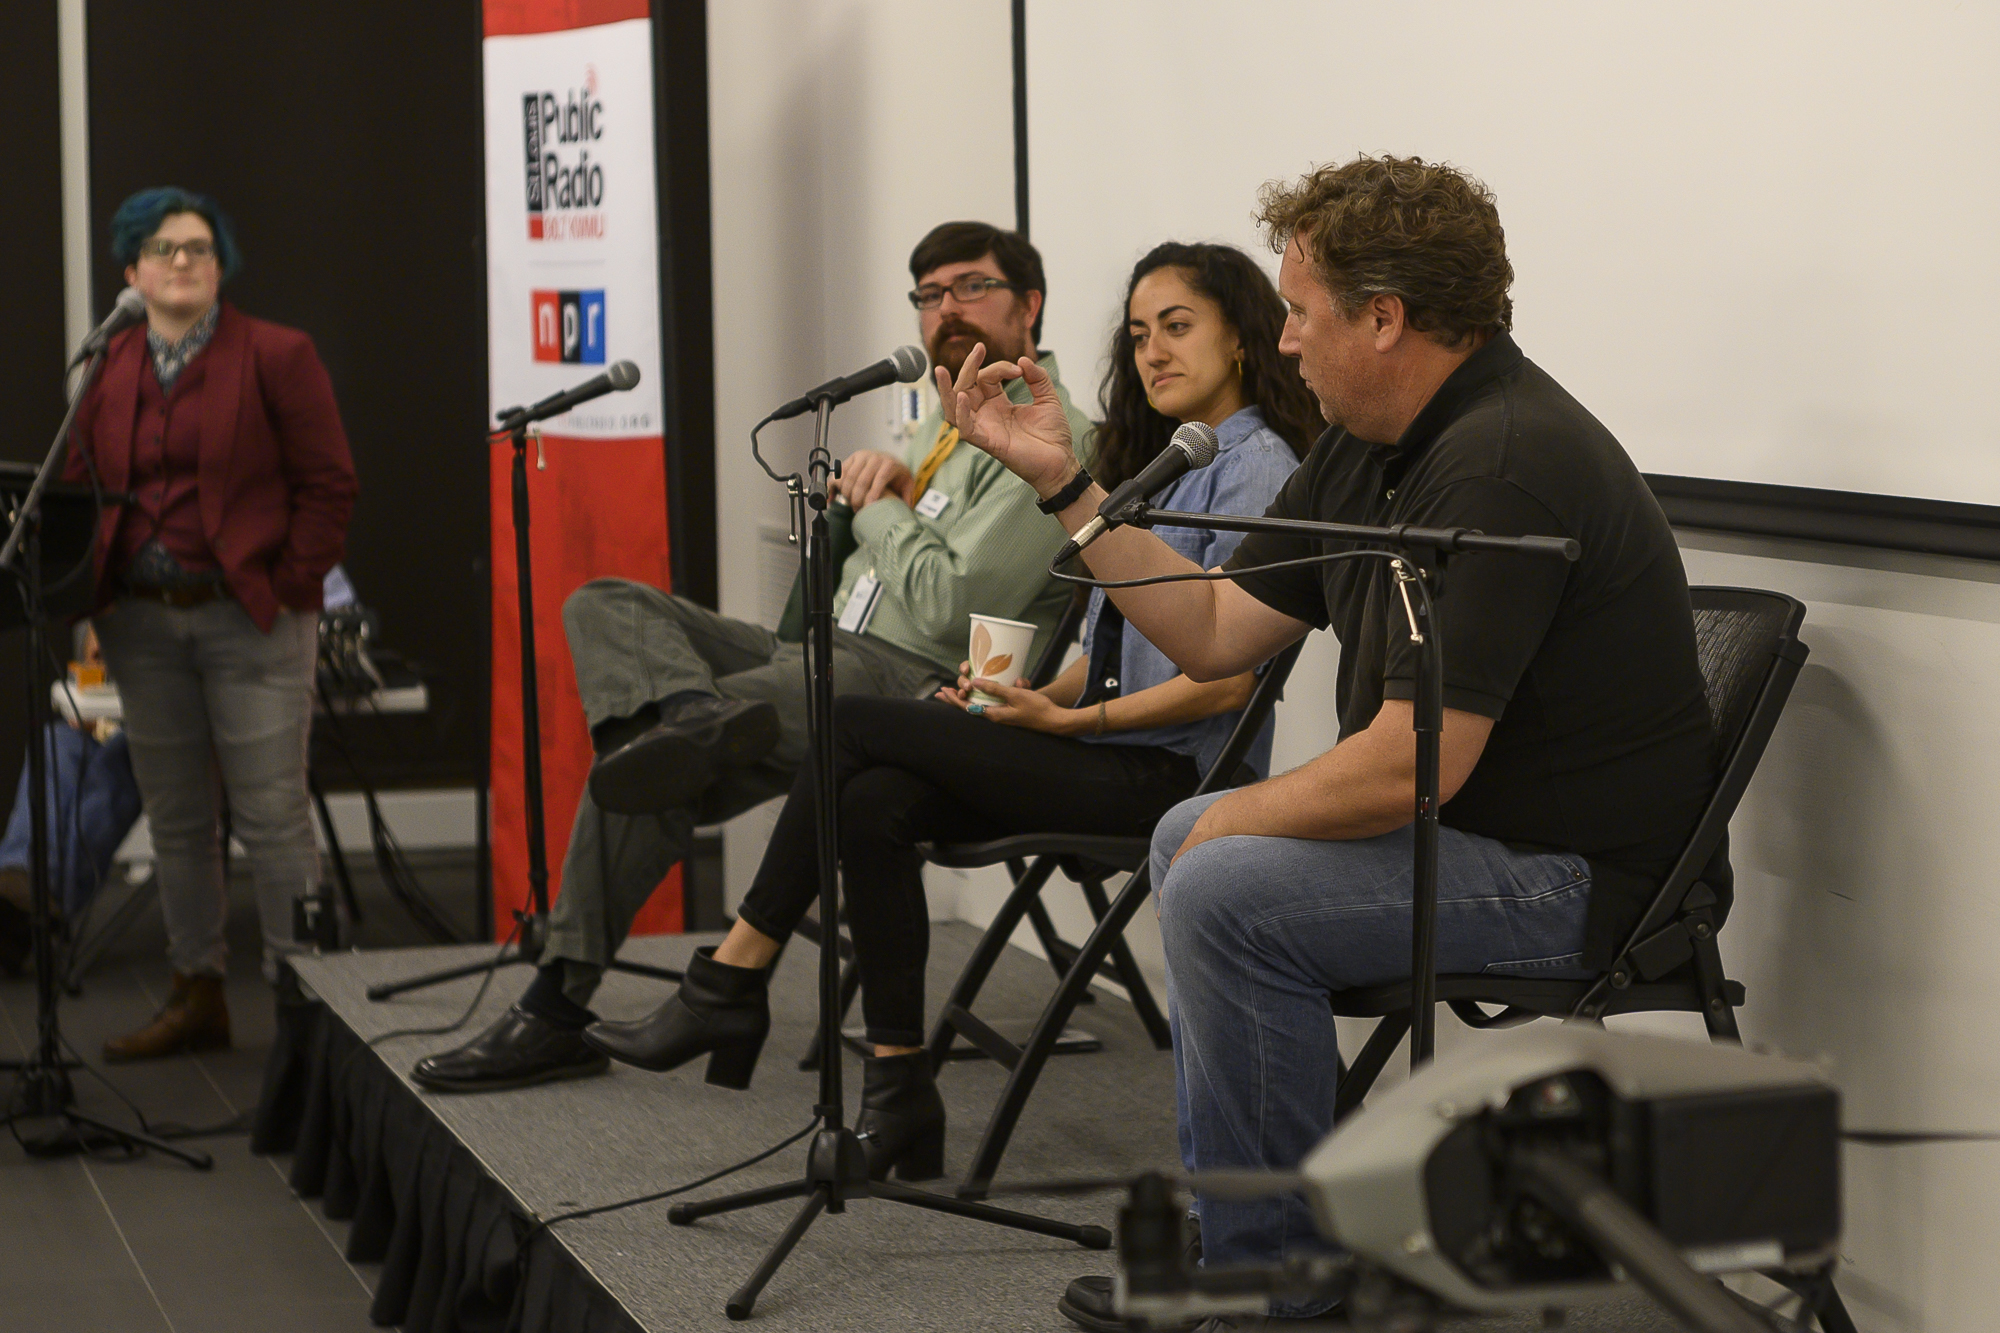 Speaker David Carson makes a hand gesture. Visible are Host Kae Petrin, and speakers Brent Jones and Carolina Hidalgo